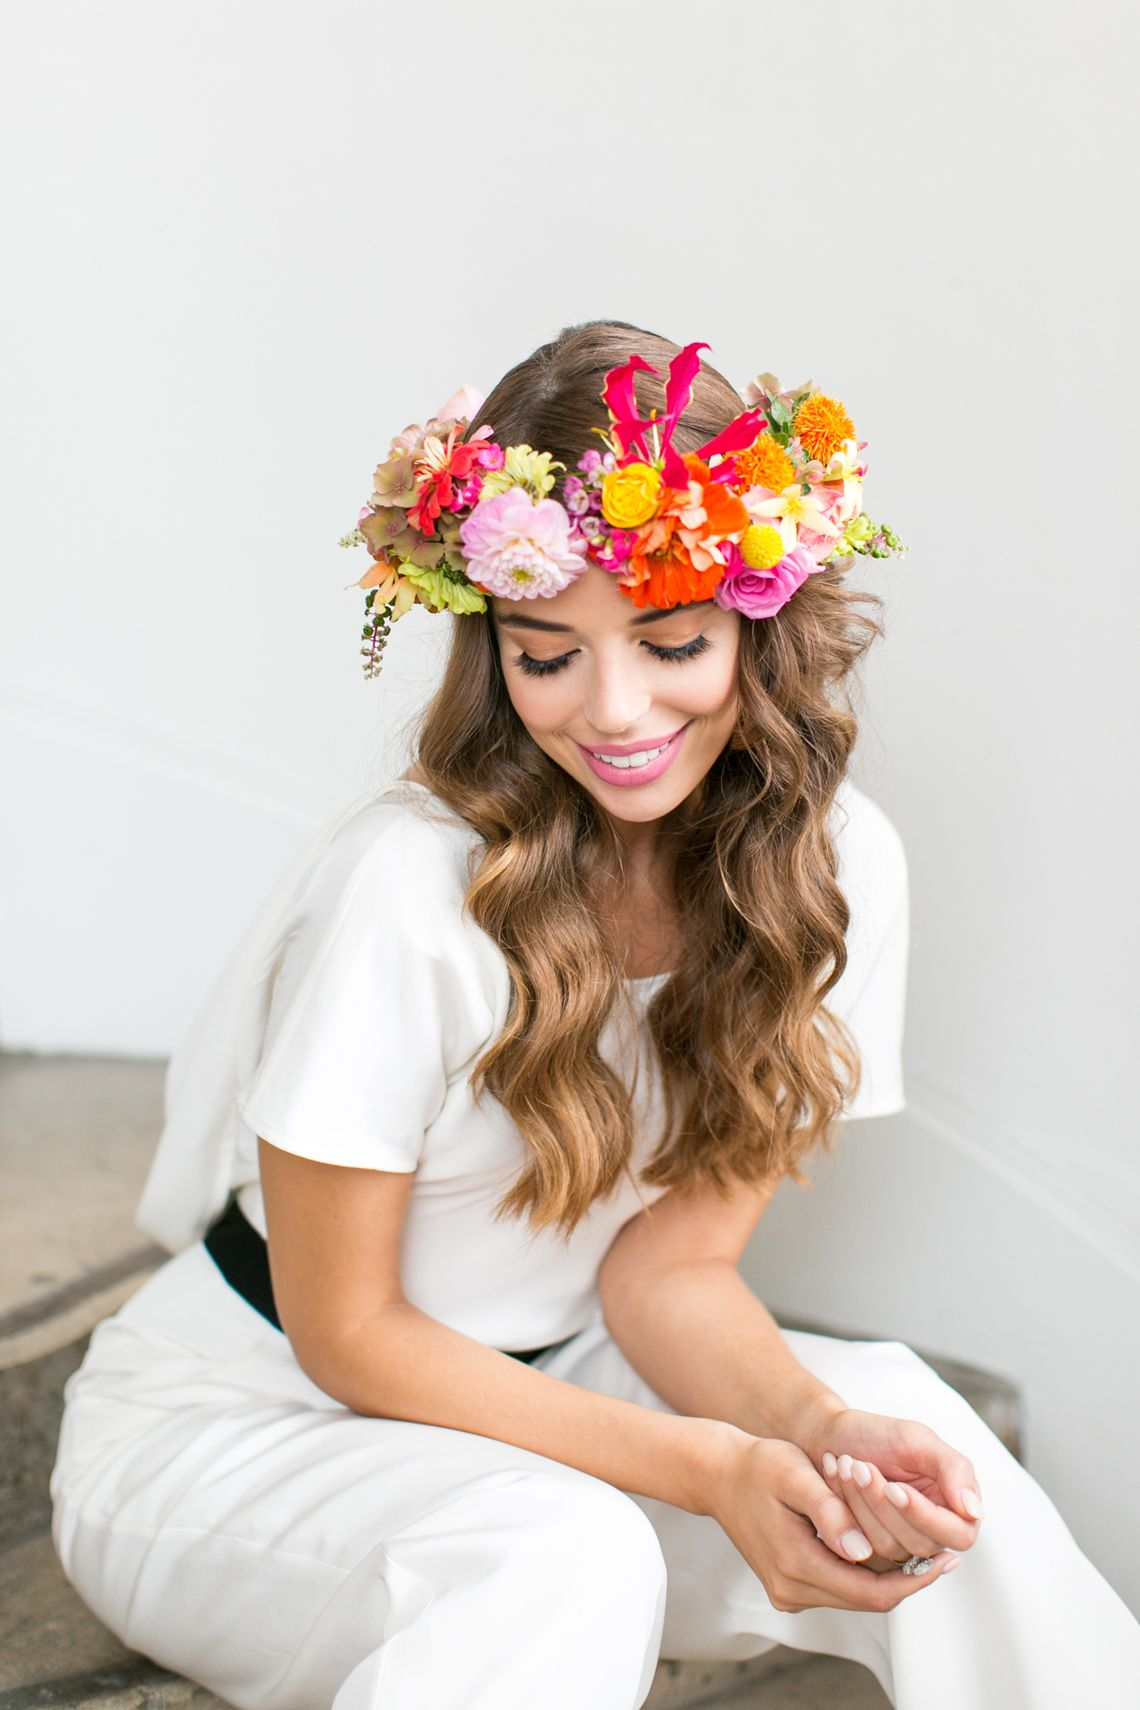 Tropical punch a diy bridal brunch with cricut flowers in her house of ollichon bridal jumpsuit teamed perfectly with a bright floral crown perfect festival wedding vibes festivalwedding alternativeweddingdress izmirmasajfo